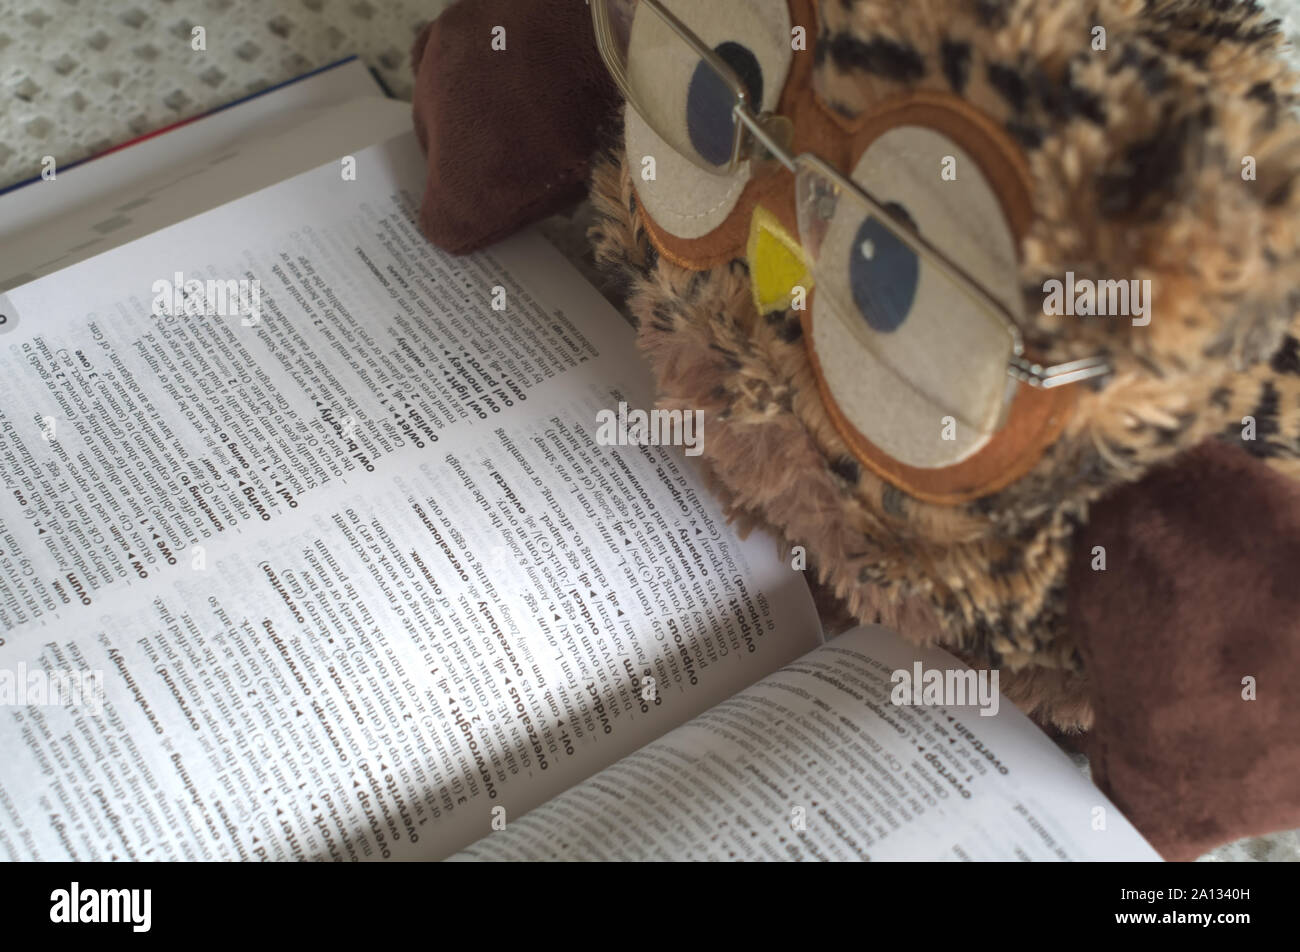 Toy Owl With Glasses on Reading a Dictionary Stock Photo